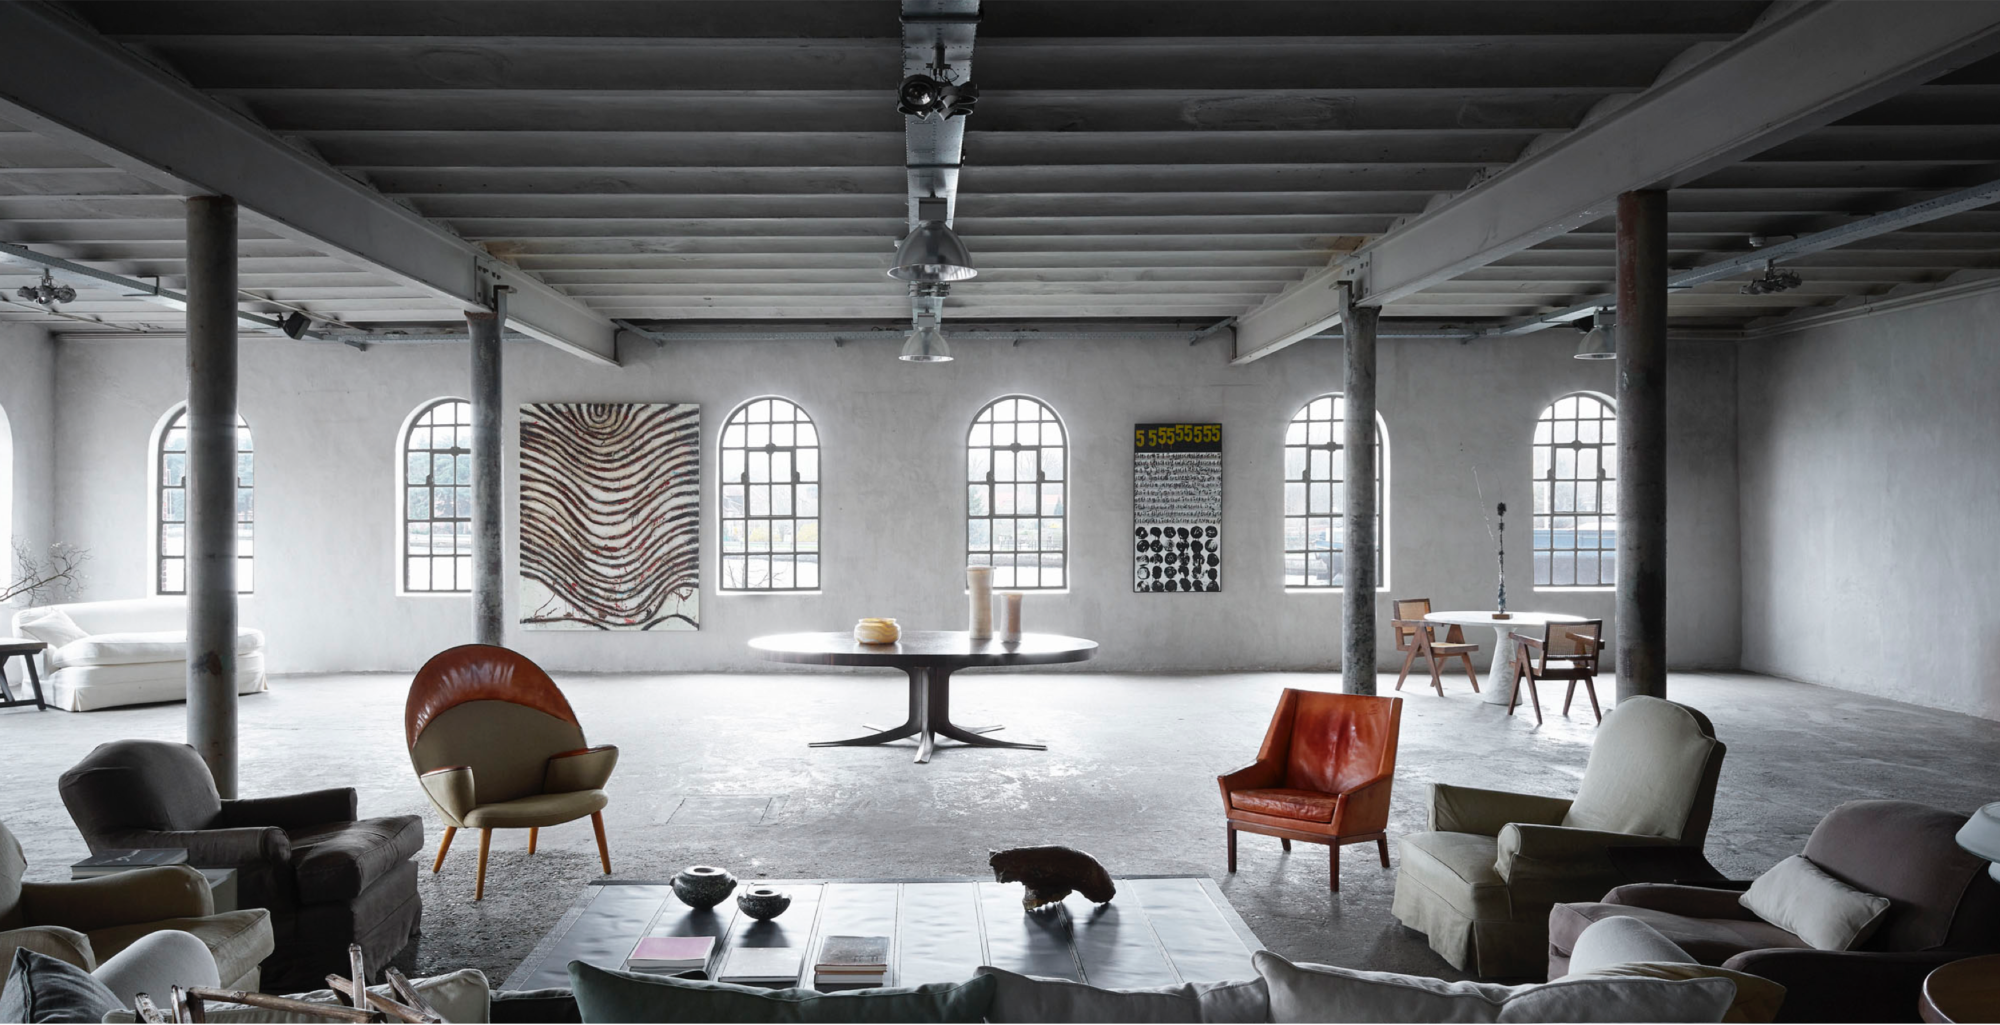 The Antiquaire studio spaces at Kanaal, which are the home of our Interiors & Design Practice